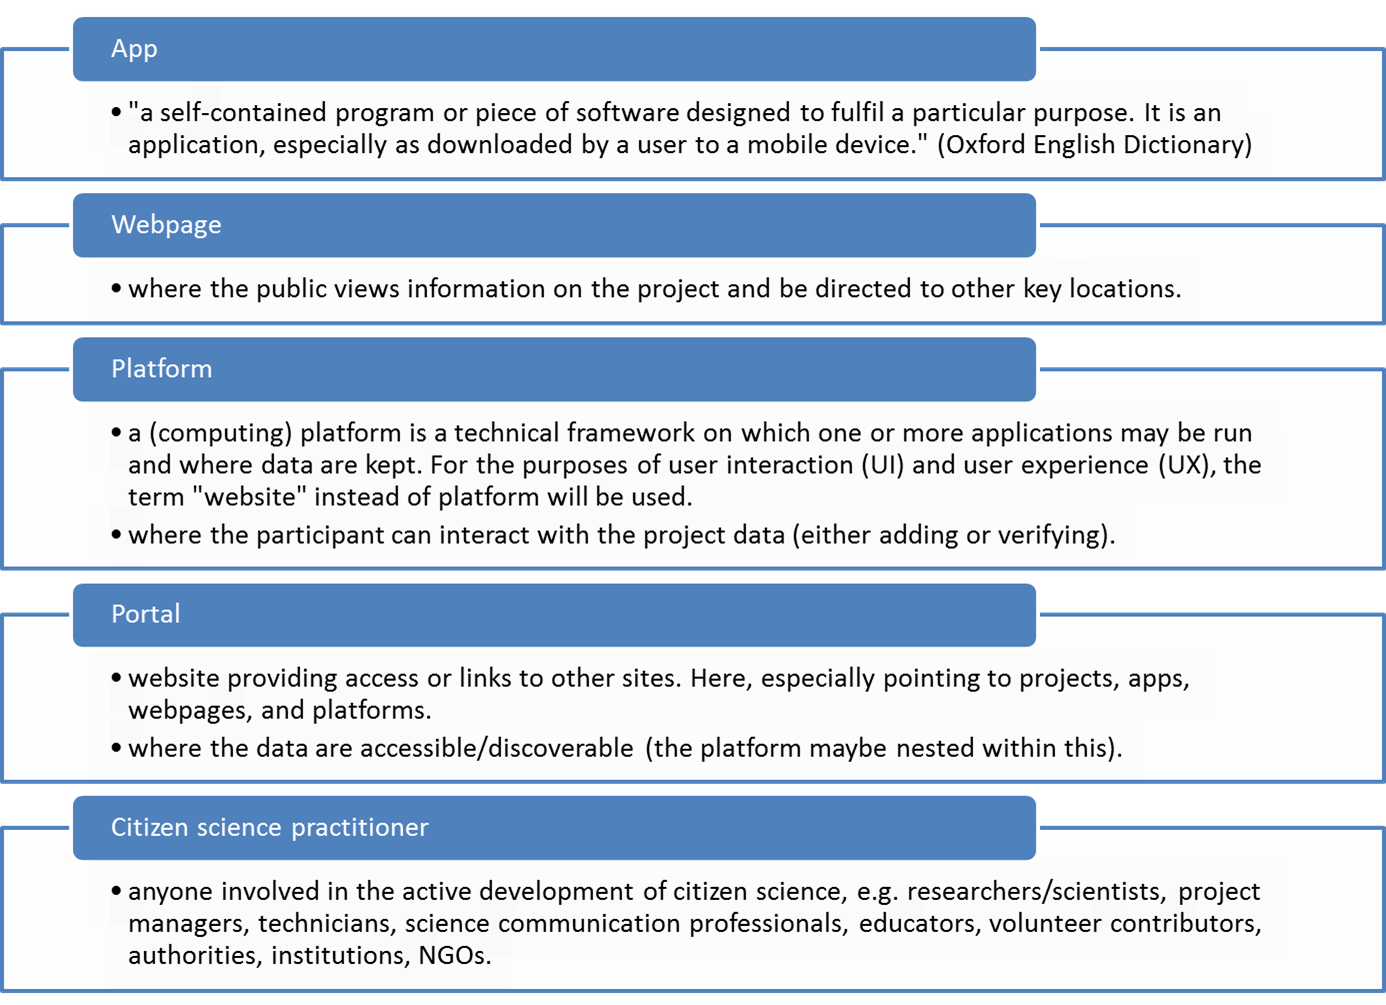 Defining principles for mobile apps and platforms